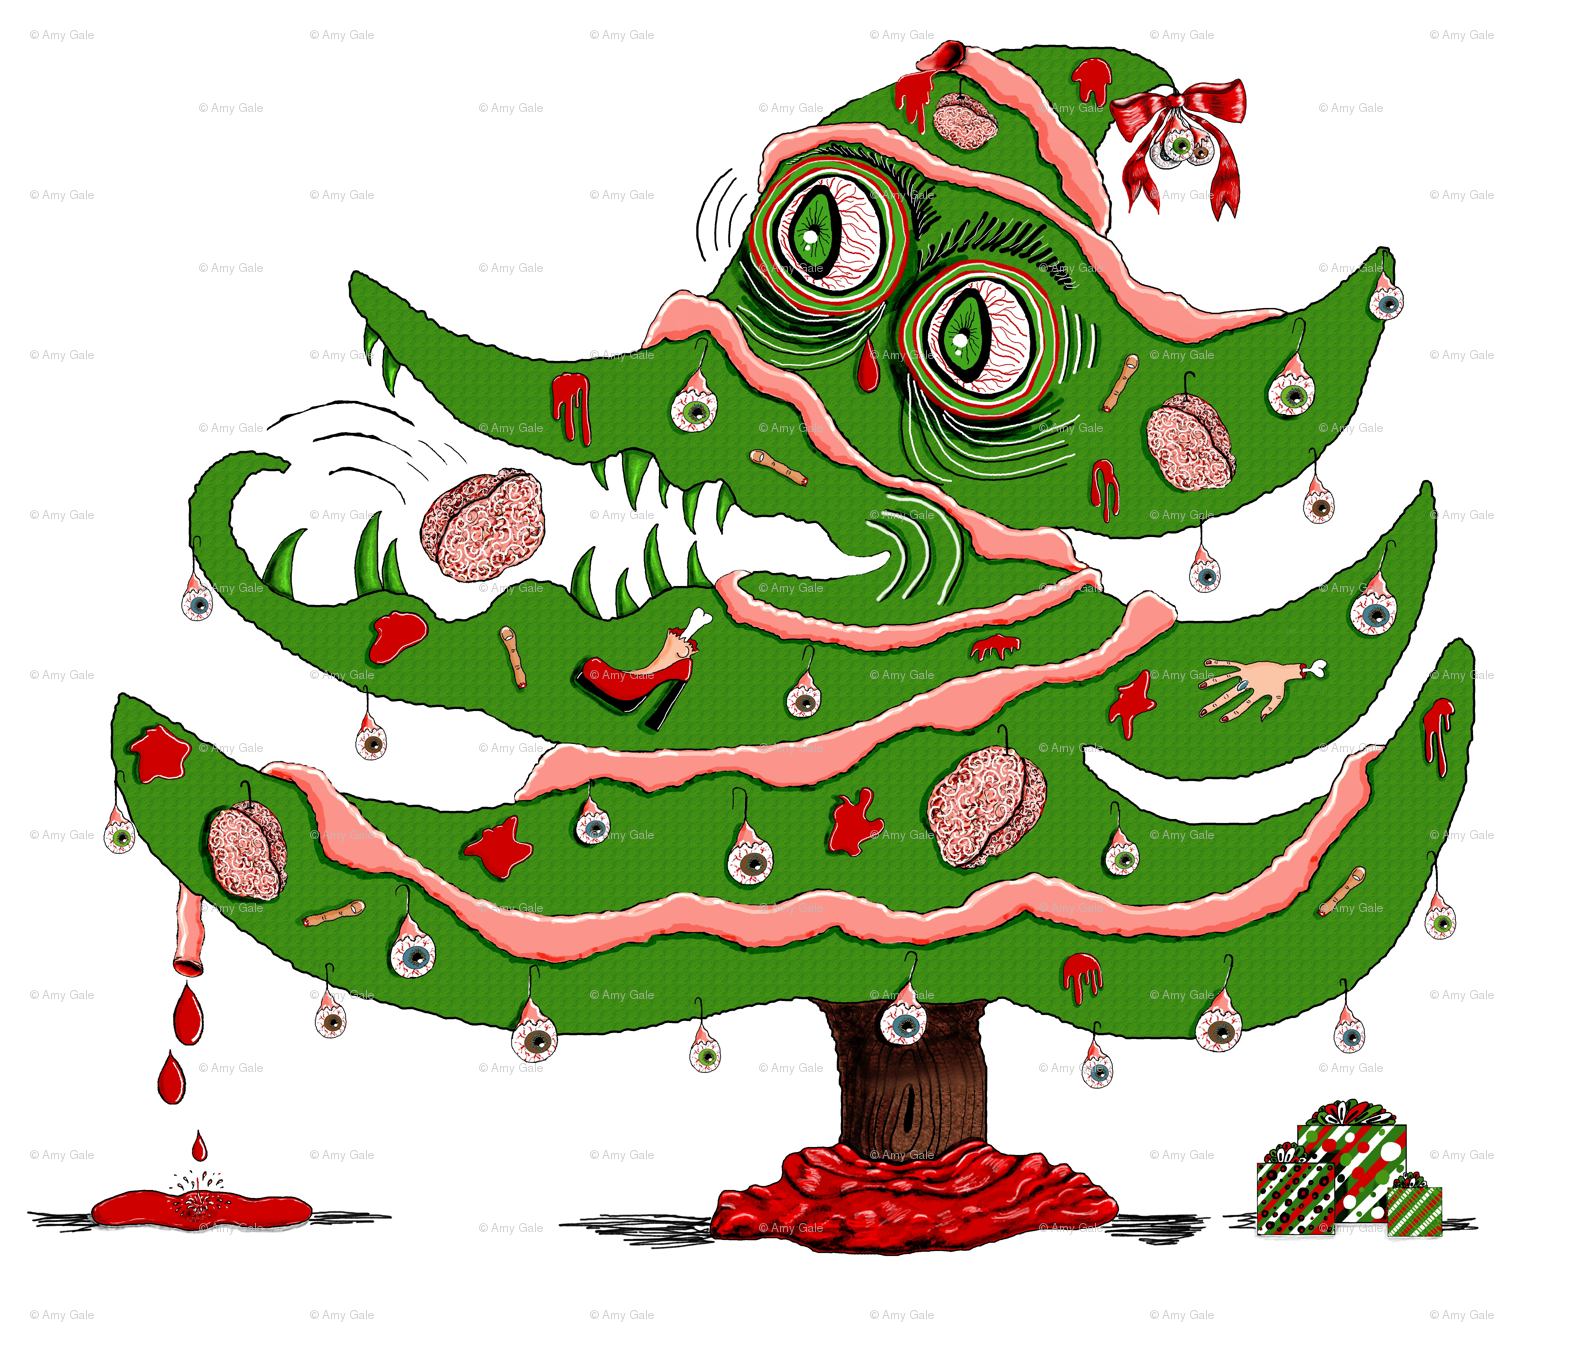 Zombie Christmas Tree, large scale fabric - amy_g - Spoonflower